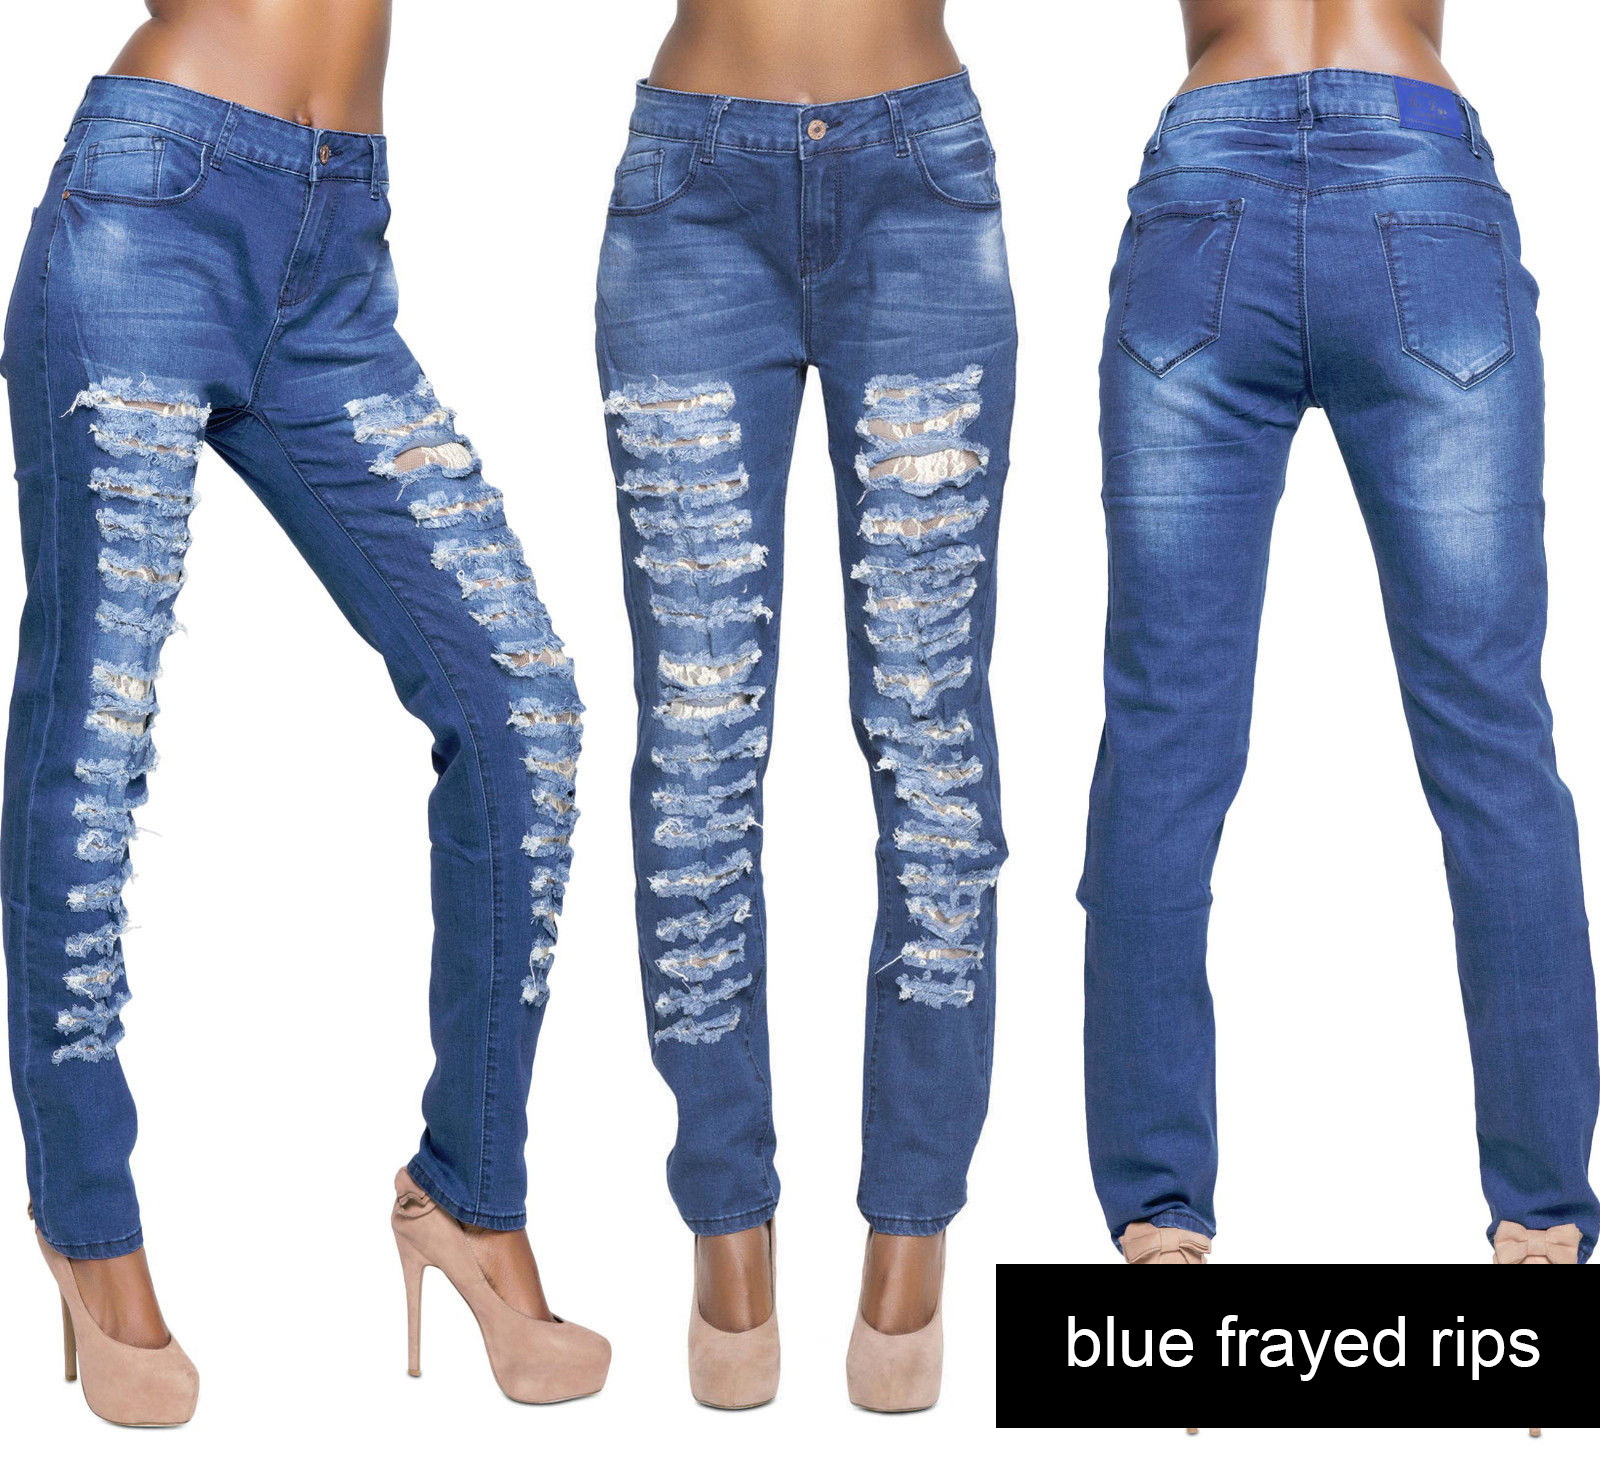 truedfil3gz.gq: womens jeans size From The Community. size chart before your odering to choose the suitable size of jeans Jag Jeans Women's Alex Boyfriend. by Jag Jeans. $ - $ $ 39 $ 84 00 Prime. FREE Shipping on eligible orders. Some sizes/colors are Prime eligible.